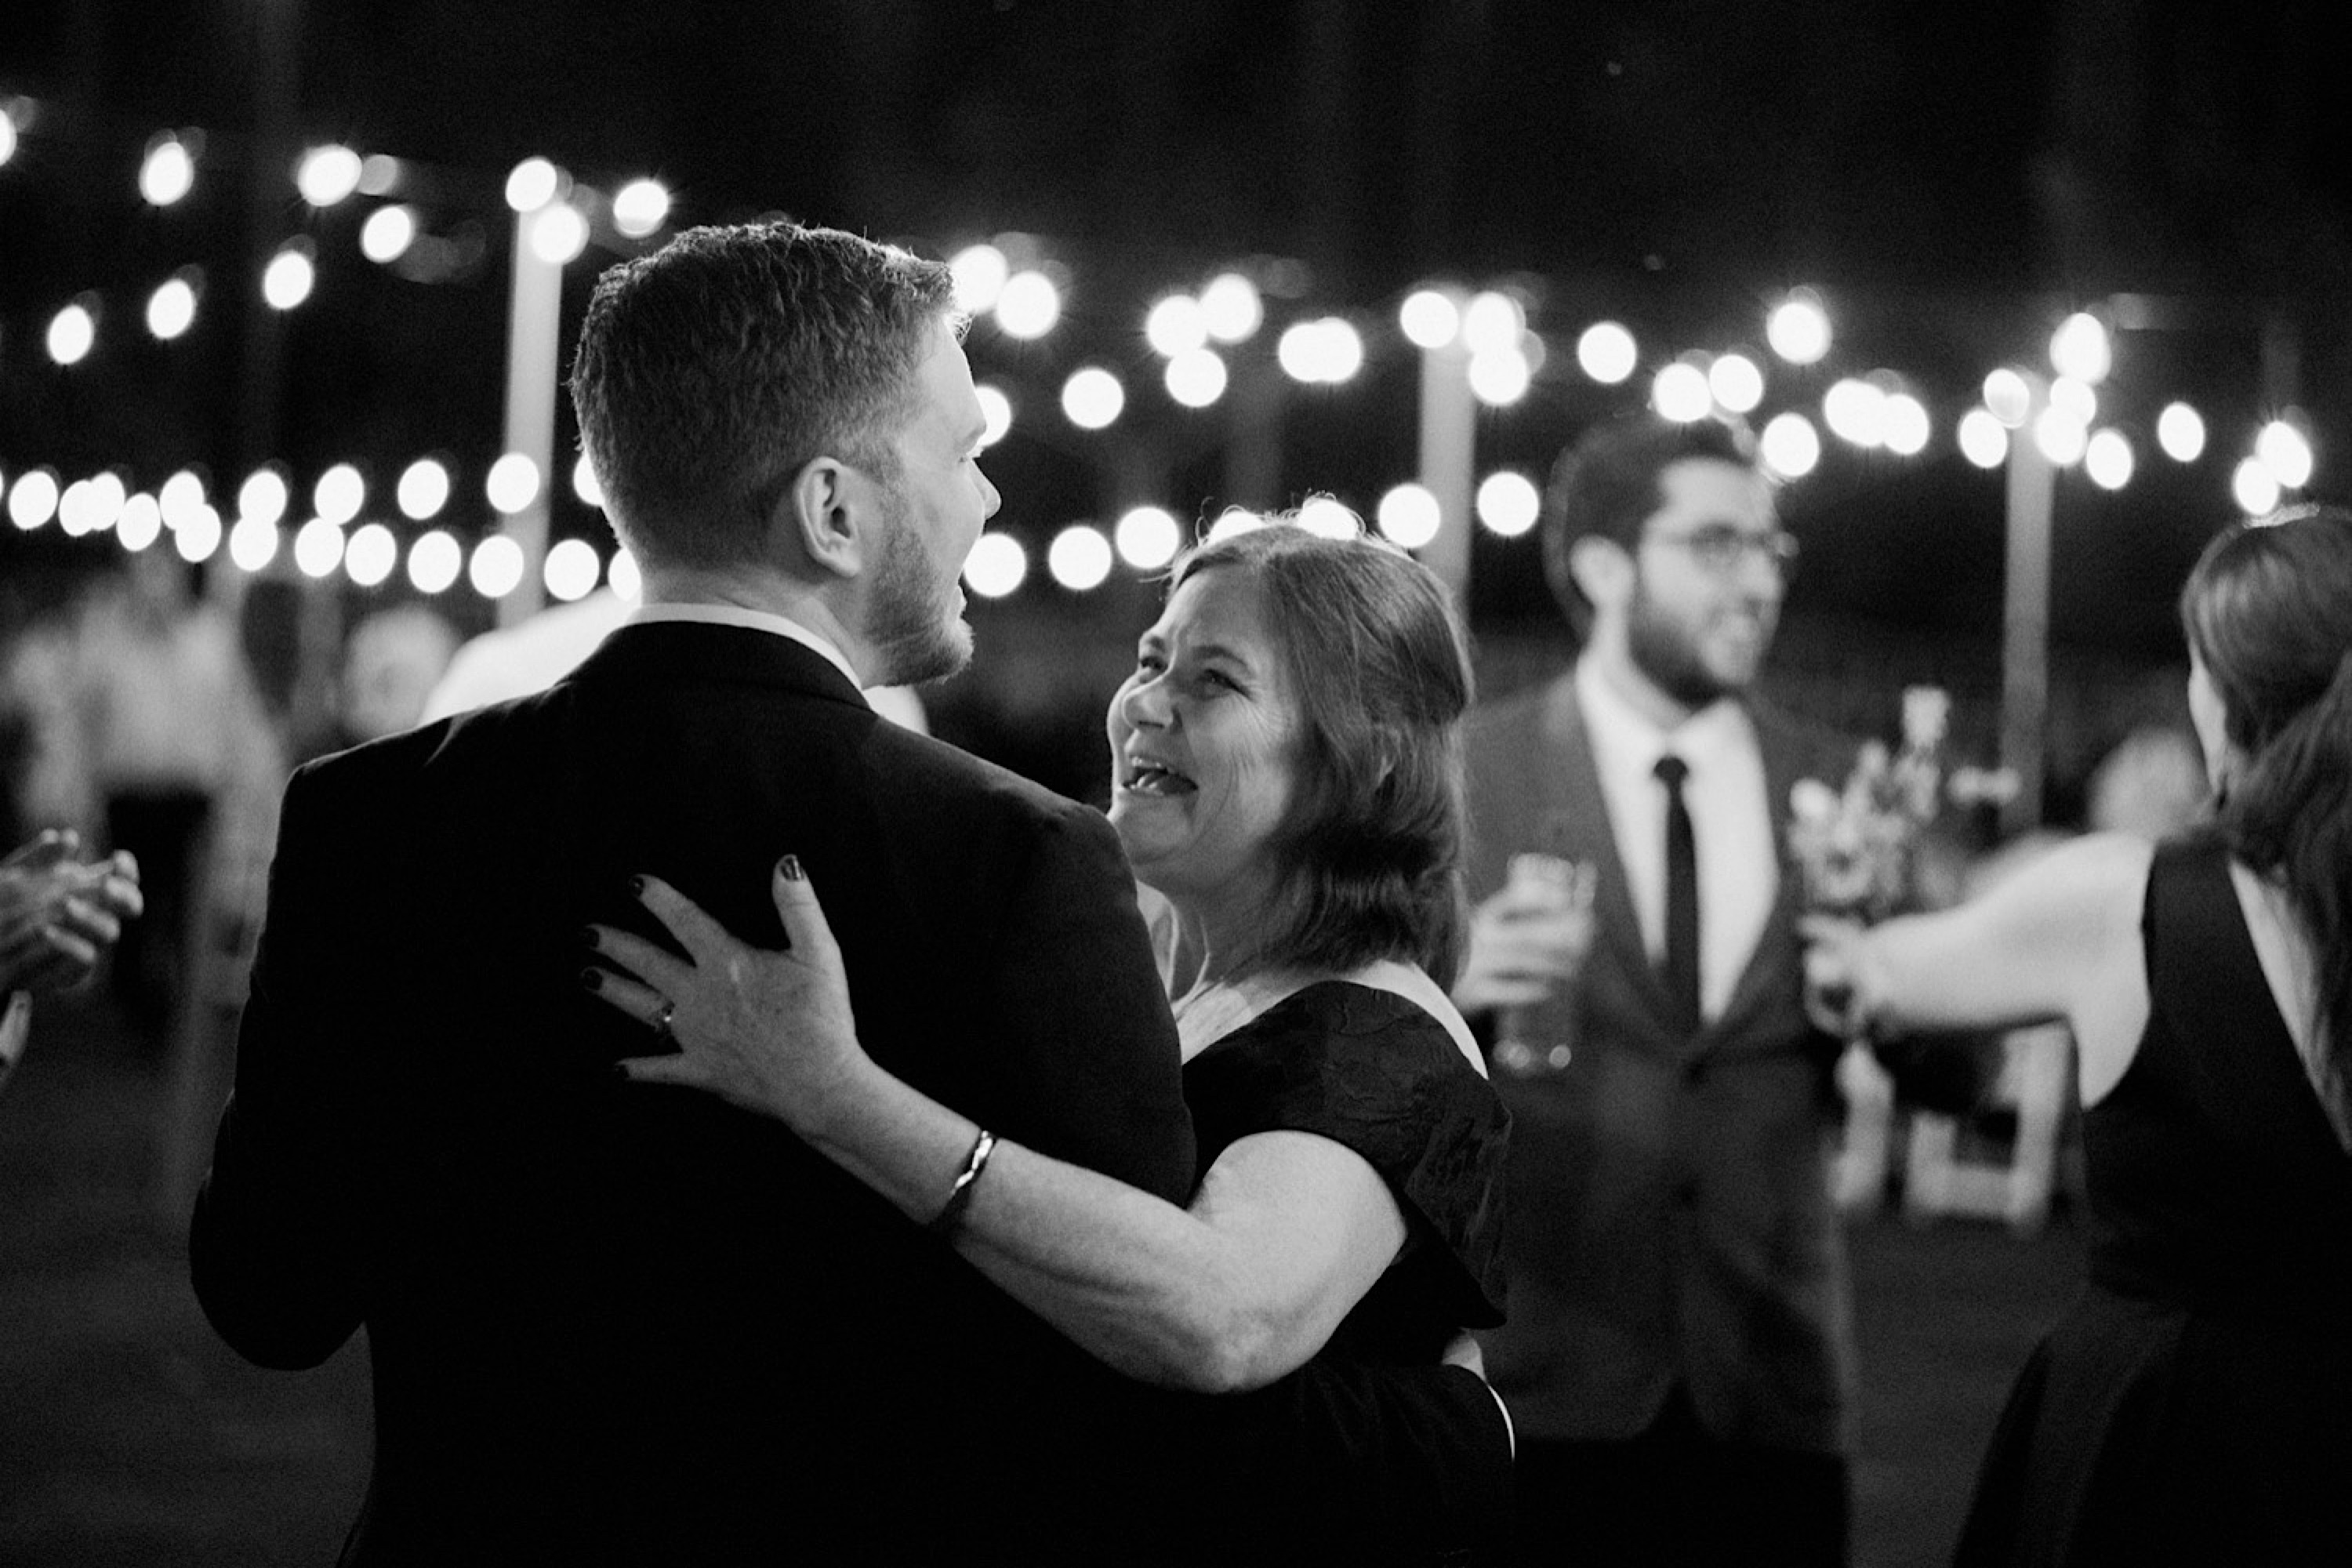 A black & white candid wedding portrait of the Groom & his Mum dancing together.